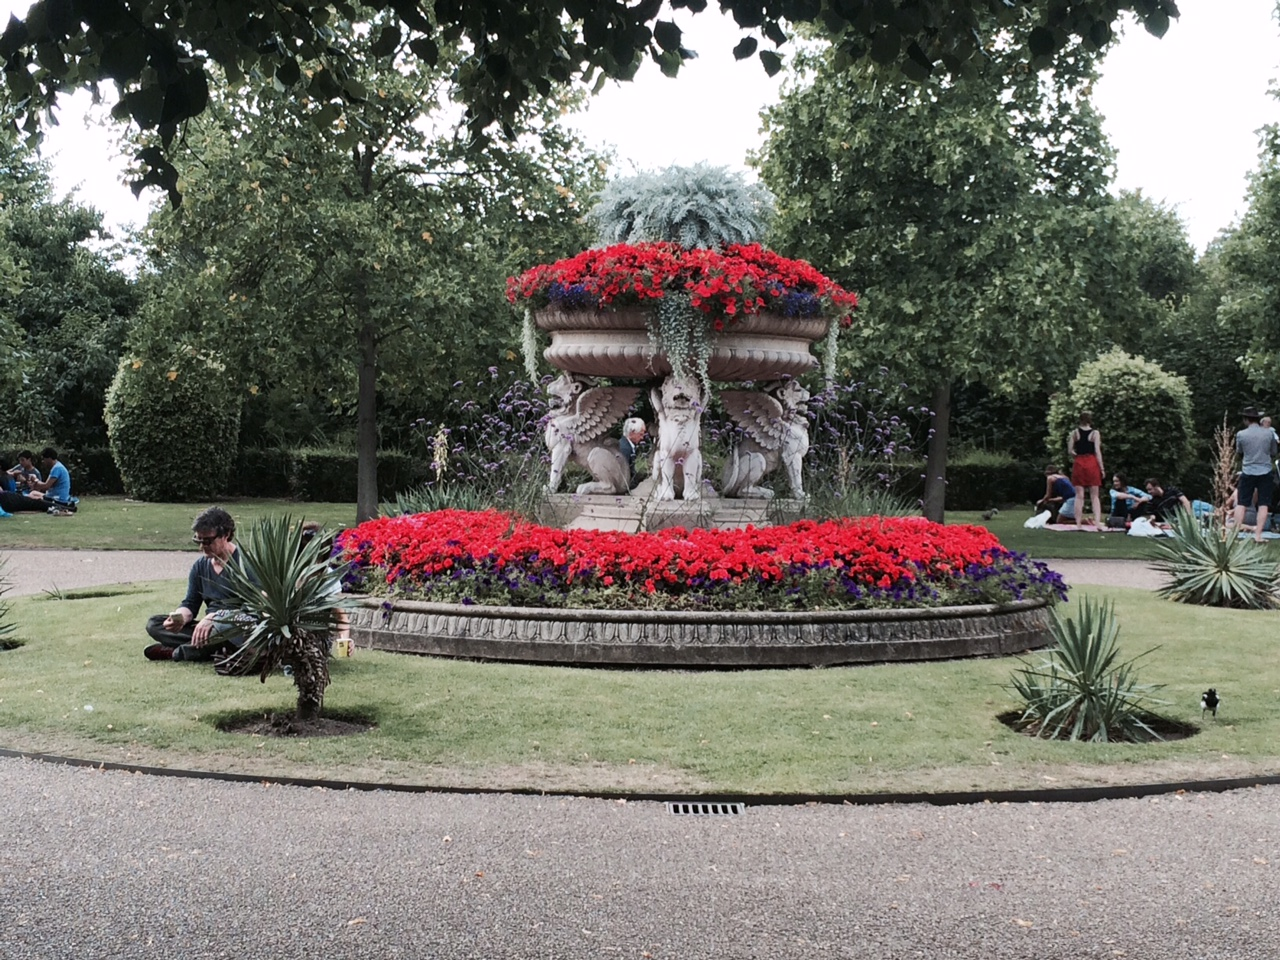 A day in the sublime Regent's Park.